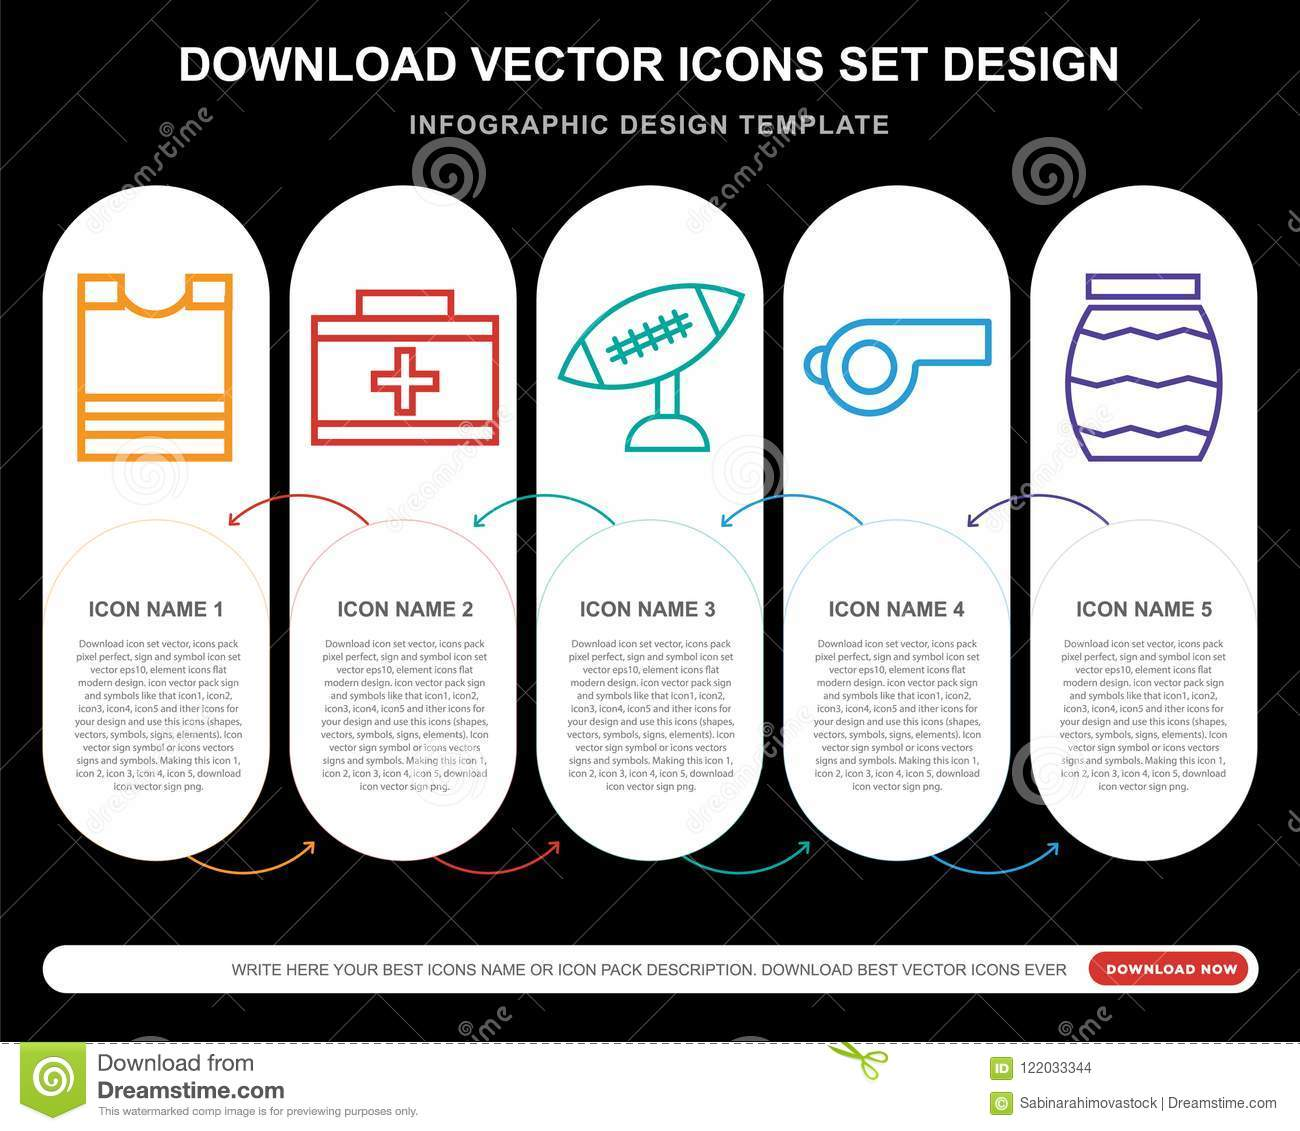 5 Vector Icons Such As Padded Shirt, First Aid Kit, American